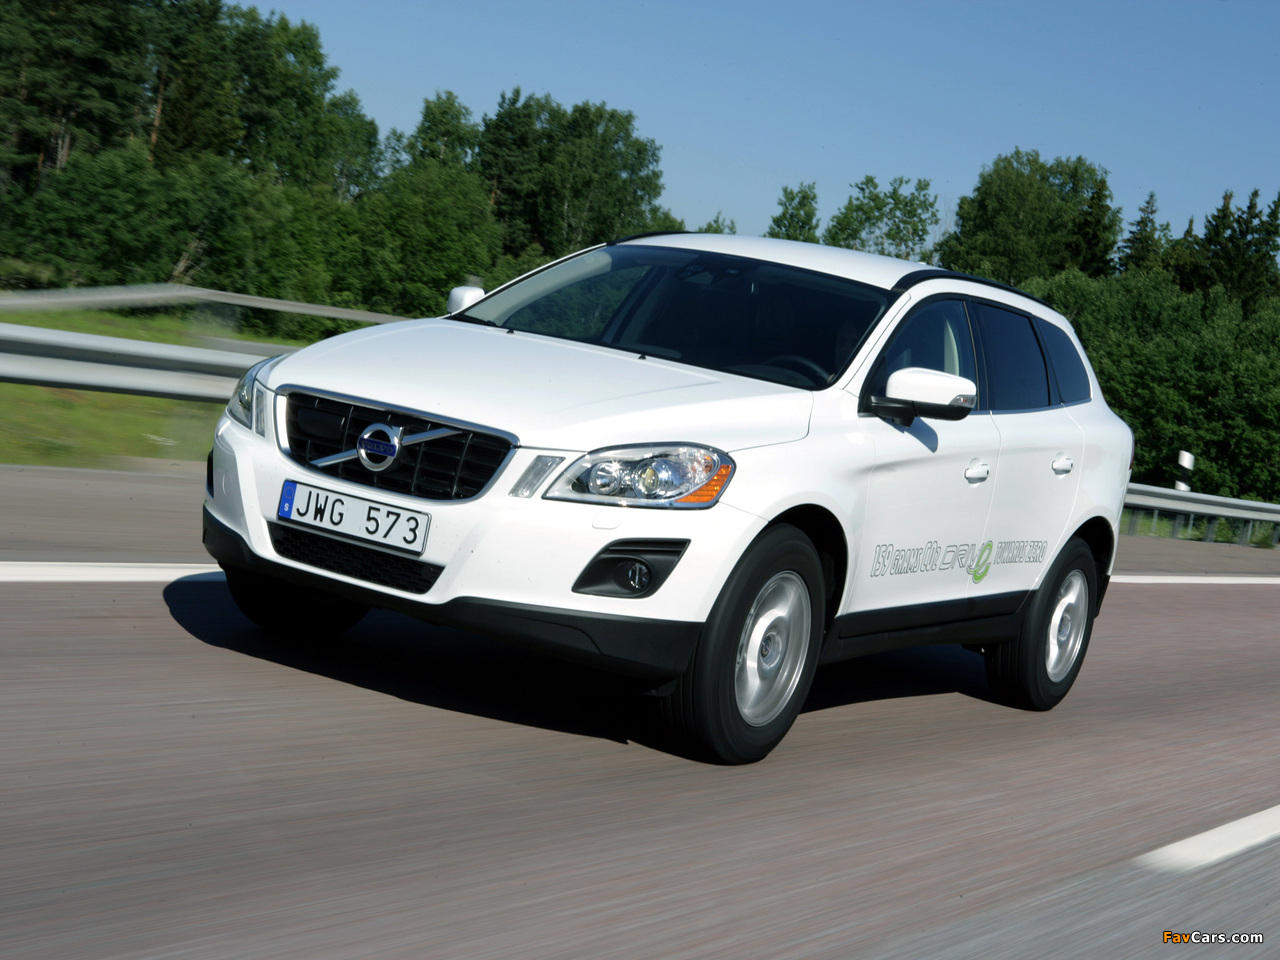 Pictures of Volvo XC60 DRIVe Efficiency 2009 (1280 x 960)